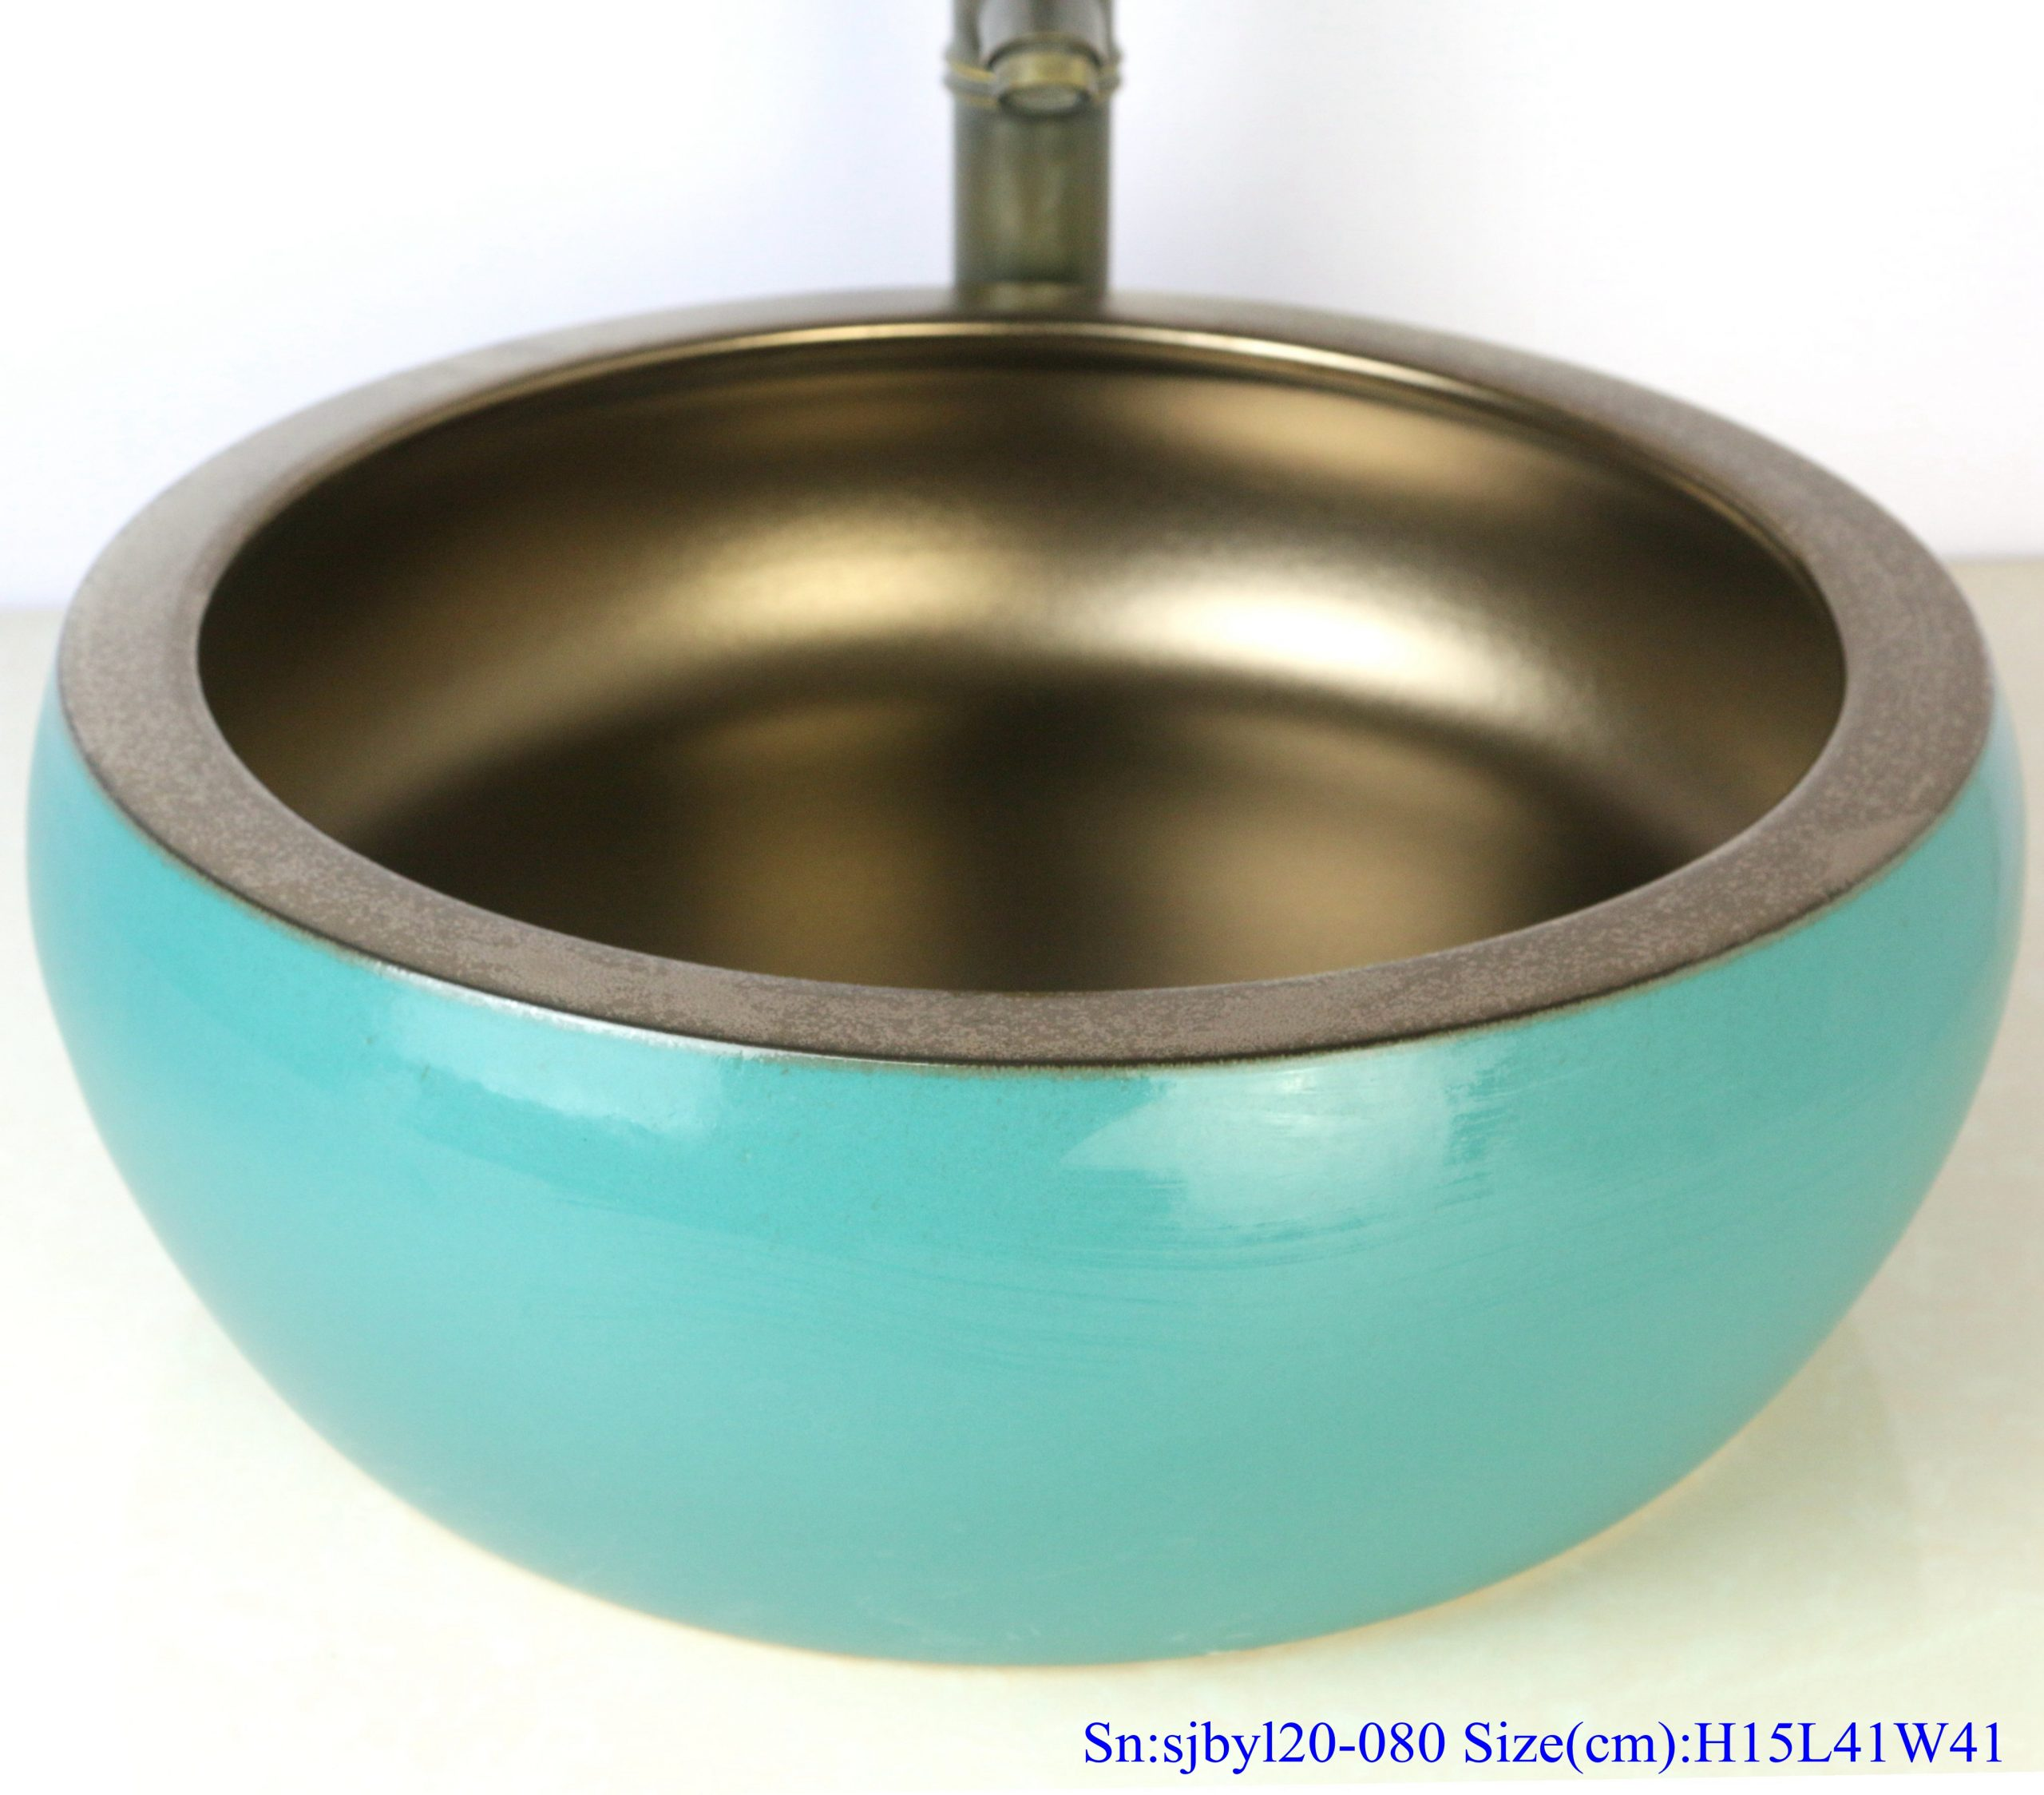 sjbyl120-080 Table basin - metallic glaze and electroplating series - gold green waist drum